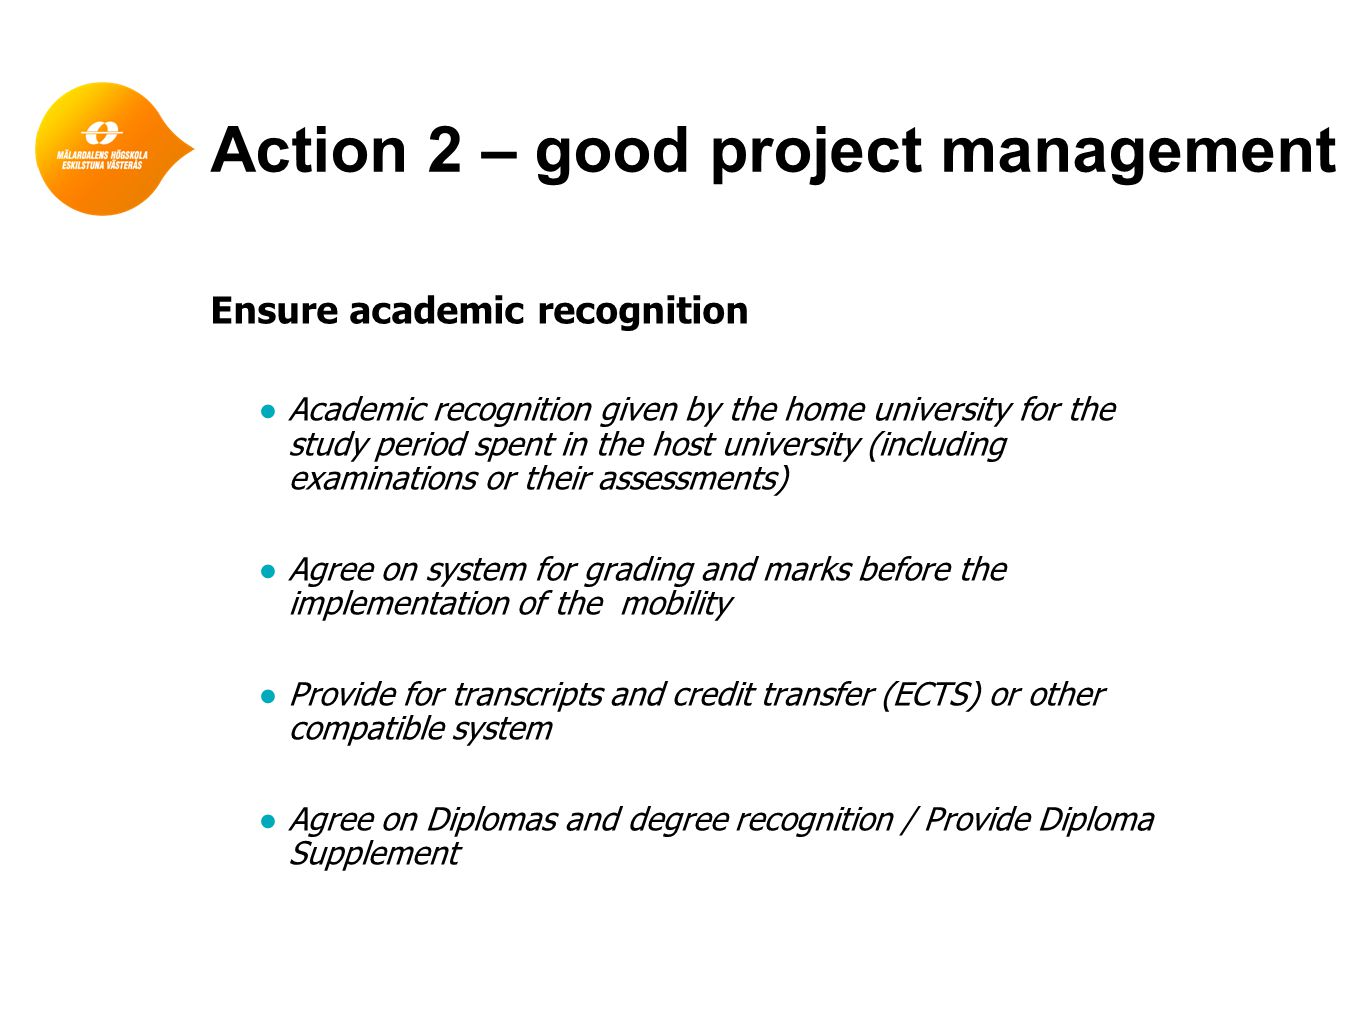 Action 2 – good project management Ensure academic recognition ●Academic recognition given by the home university for the study period spent in the host university (including examinations or their assessments) ●Agree on system for grading and marks before the implementation of the mobility ●Provide for transcripts and credit transfer (ECTS) or other compatible system ●Agree on Diplomas and degree recognition / Provide Diploma Supplement